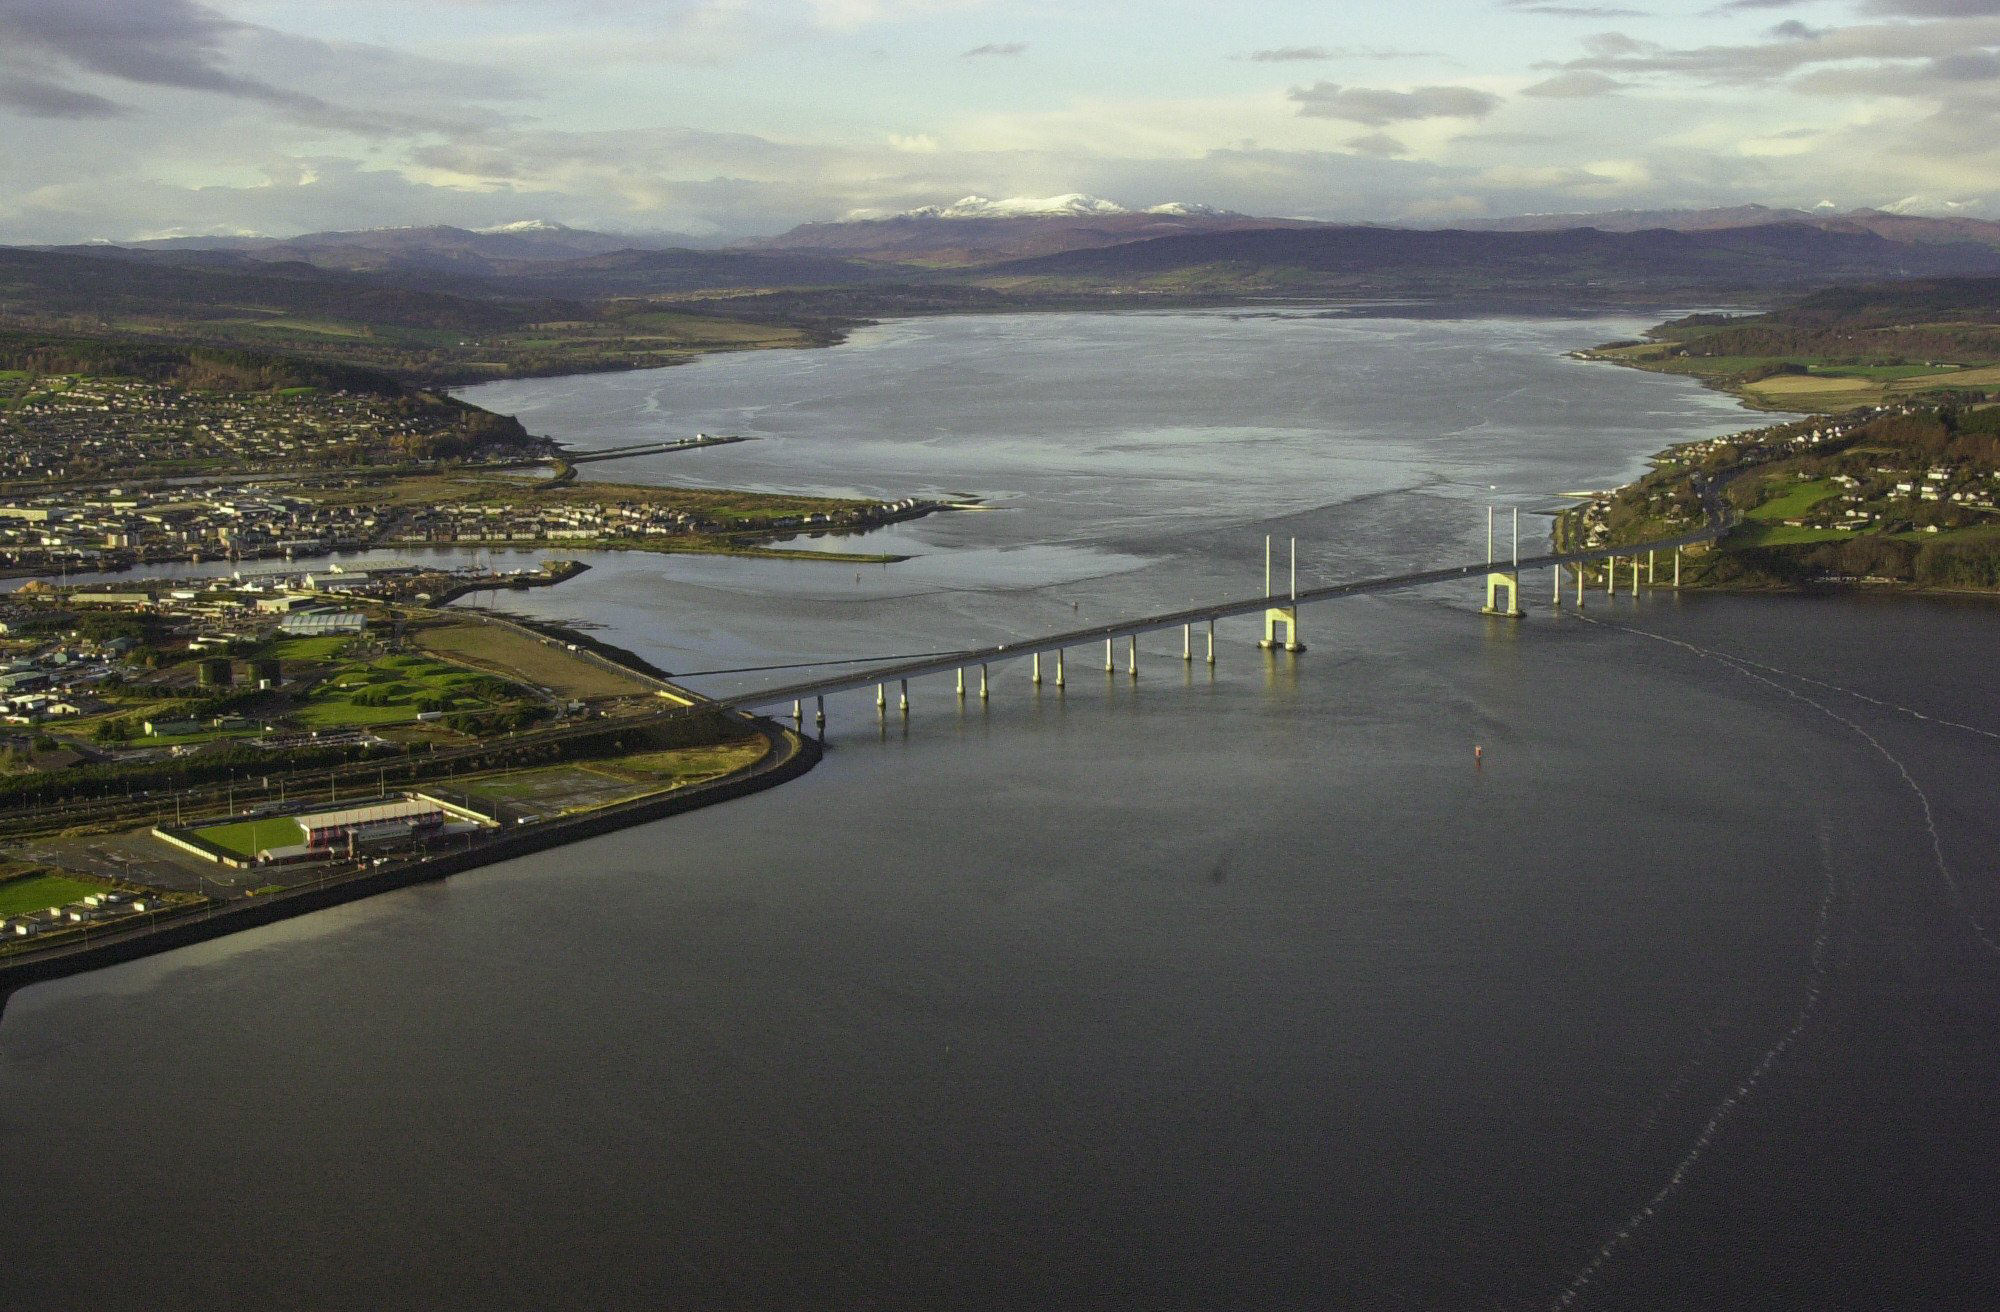 The Kessock Bridge at Inverness with the Beauly Firth beyond.